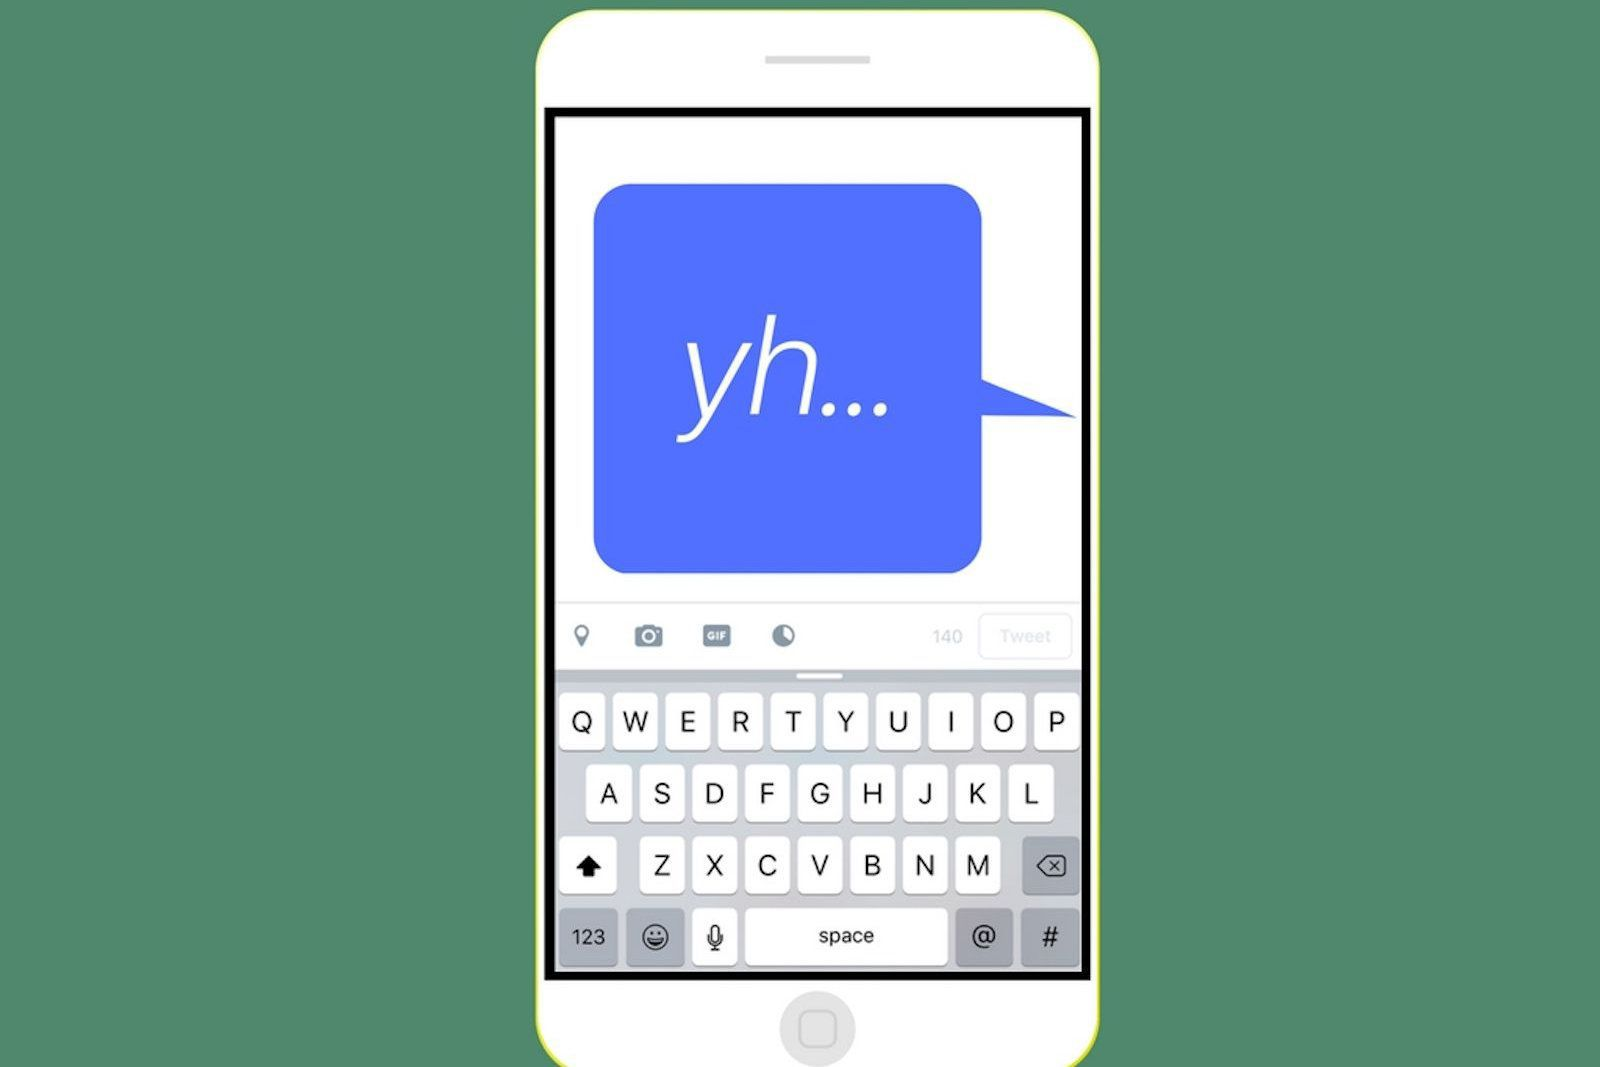 A YH text on a cell phone